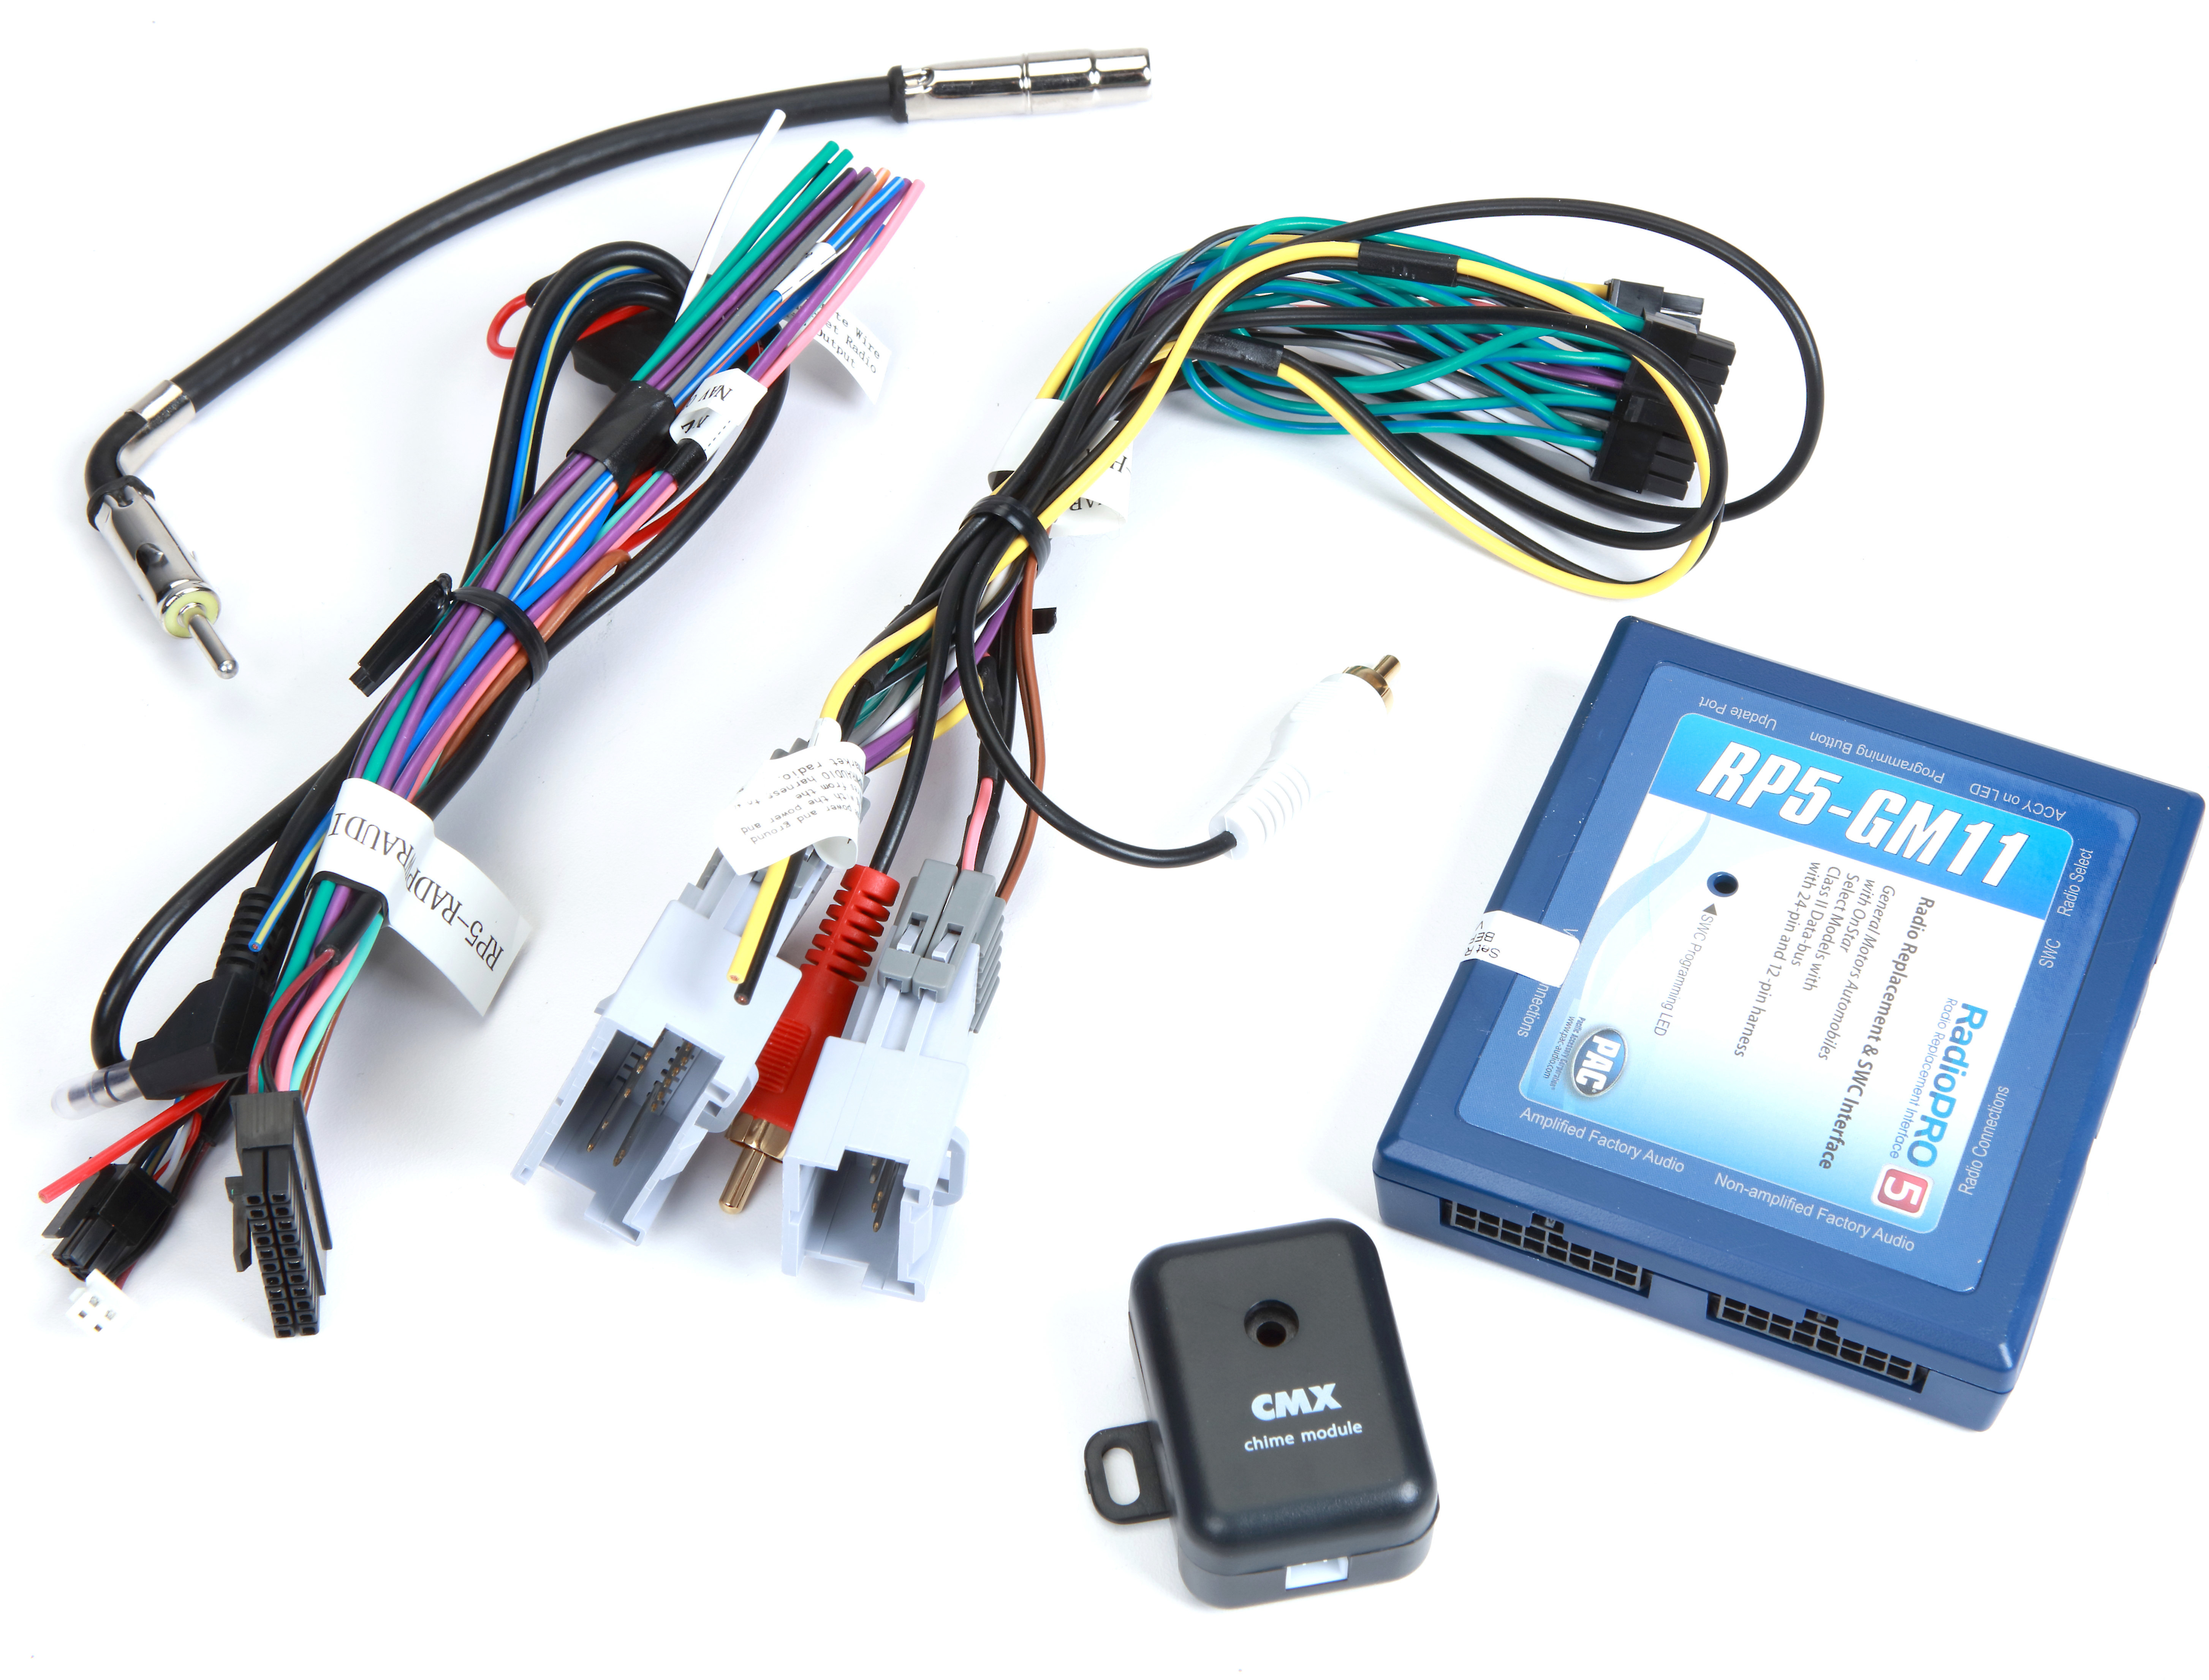 Tremendous Pac Rp5 Gm11 Wiring Interface Connect A New Car Stereo And Retain Wiring Cloud Staixaidewilluminateatxorg